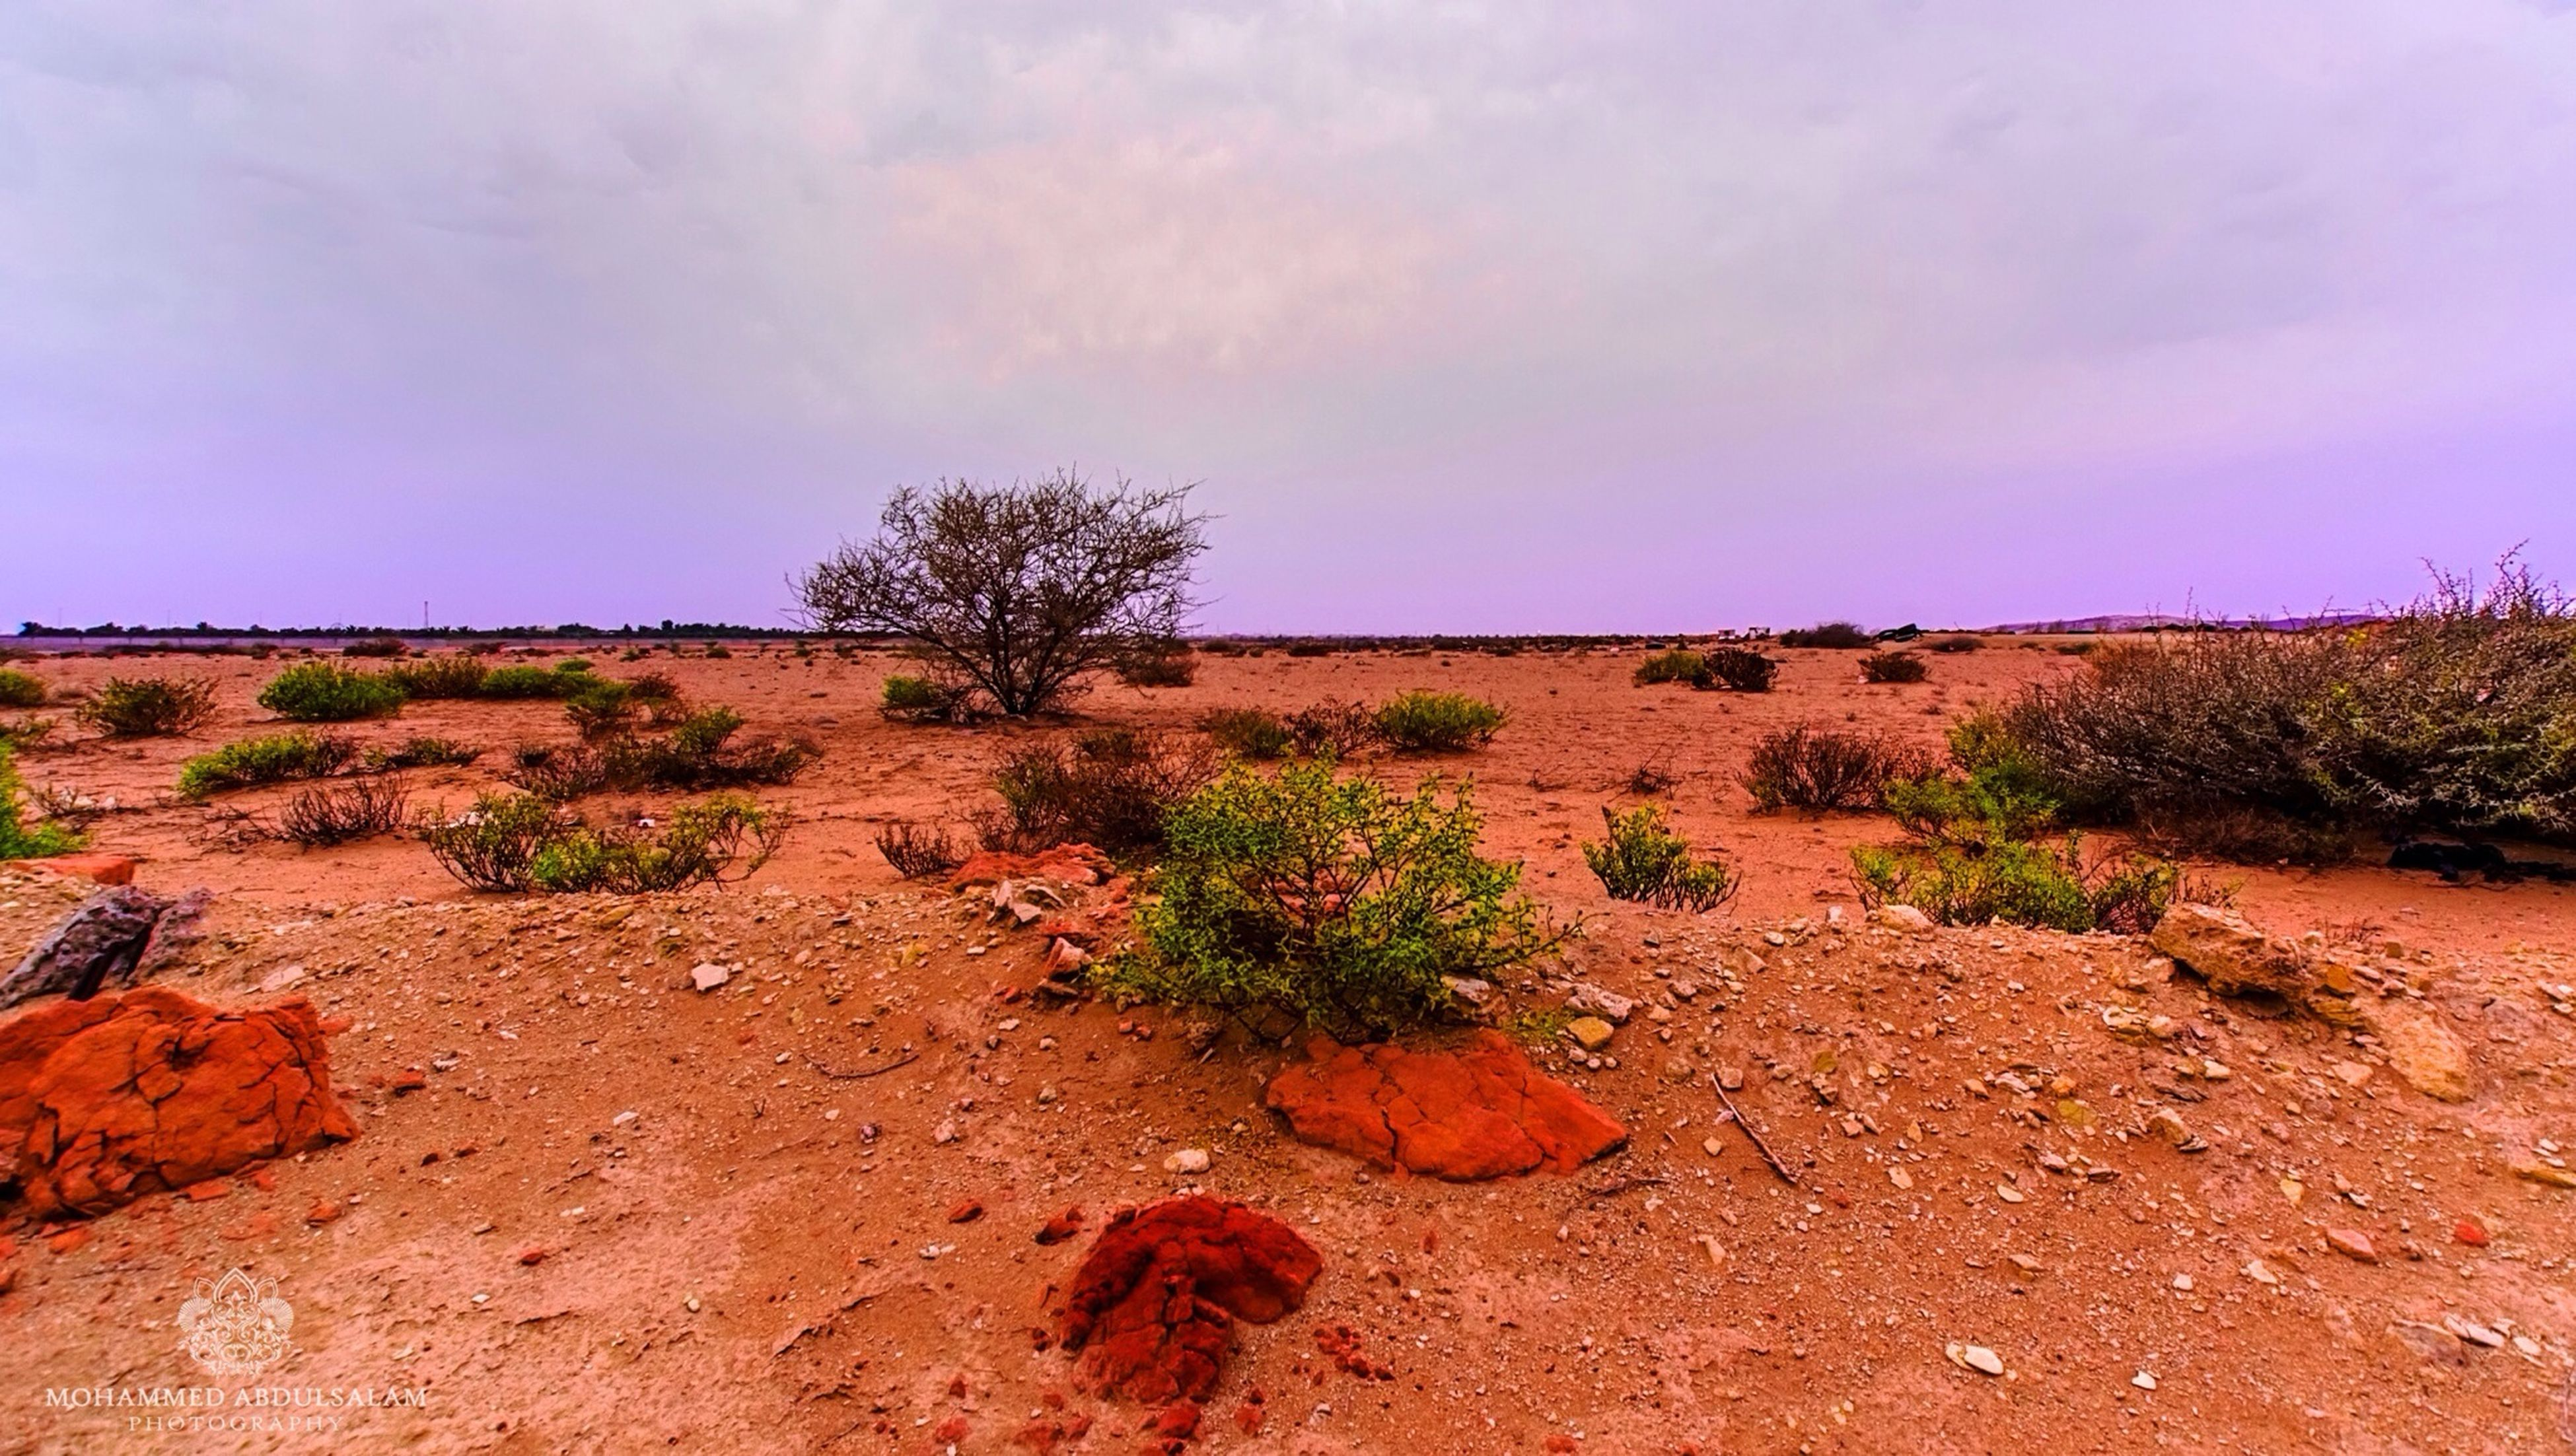 sky, tranquility, tranquil scene, landscape, nature, plant, growth, beauty in nature, scenics, sand, field, tree, cloud - sky, cloud, desert, non-urban scene, remote, no people, day, outdoors